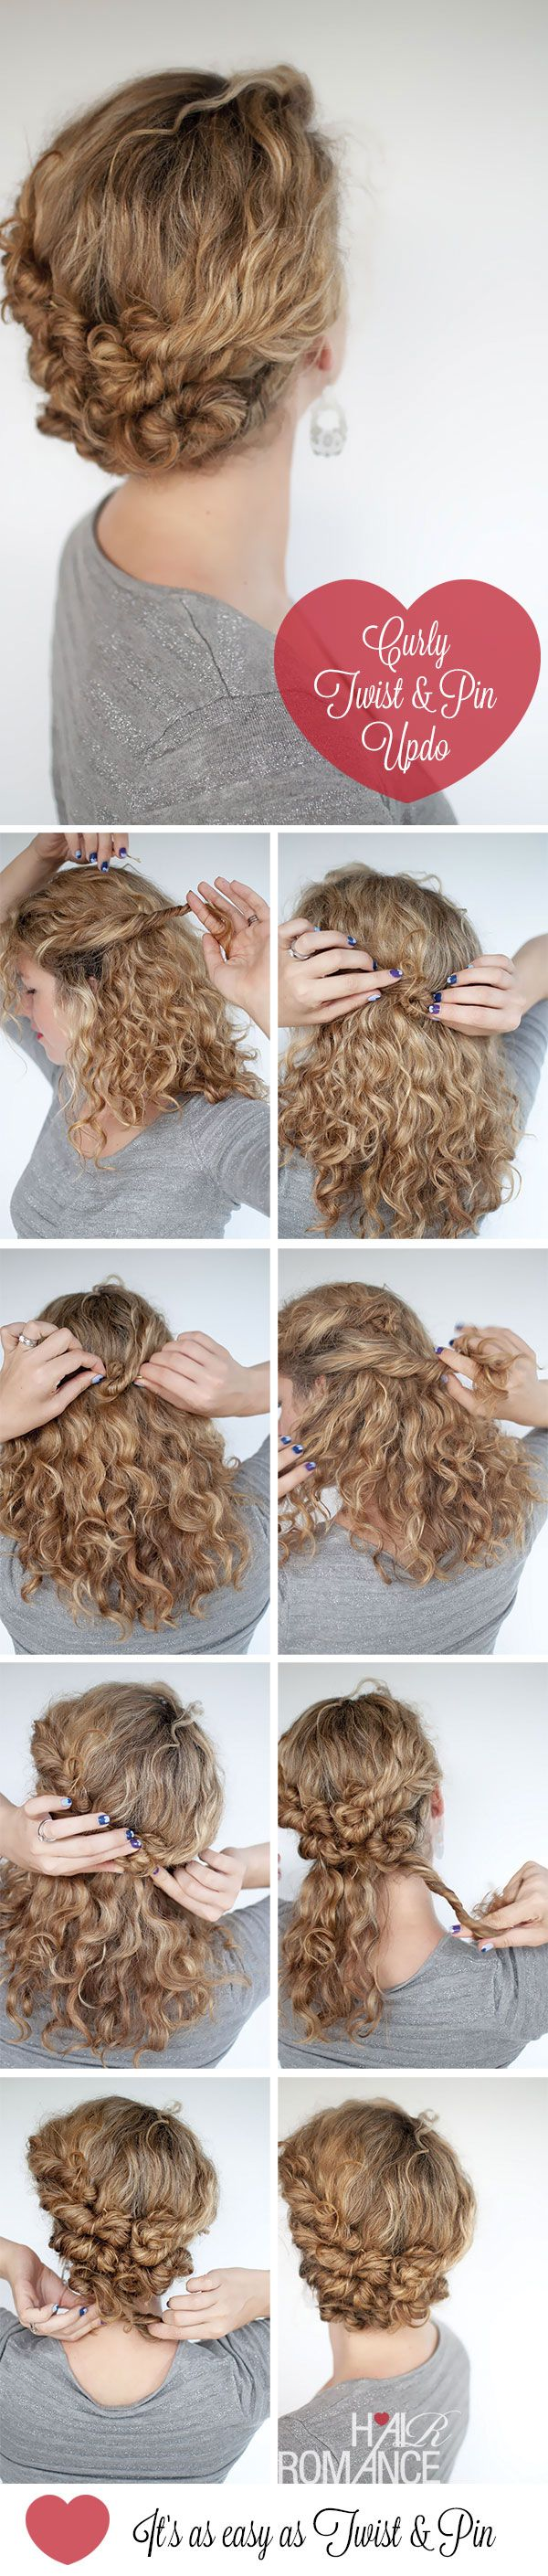 Hair Romance - curly Twist & Pin hairstyle tutorial. if you don't have curly hair, you could probably just leave your hair in braids for a night, take it out in the morning and do this.